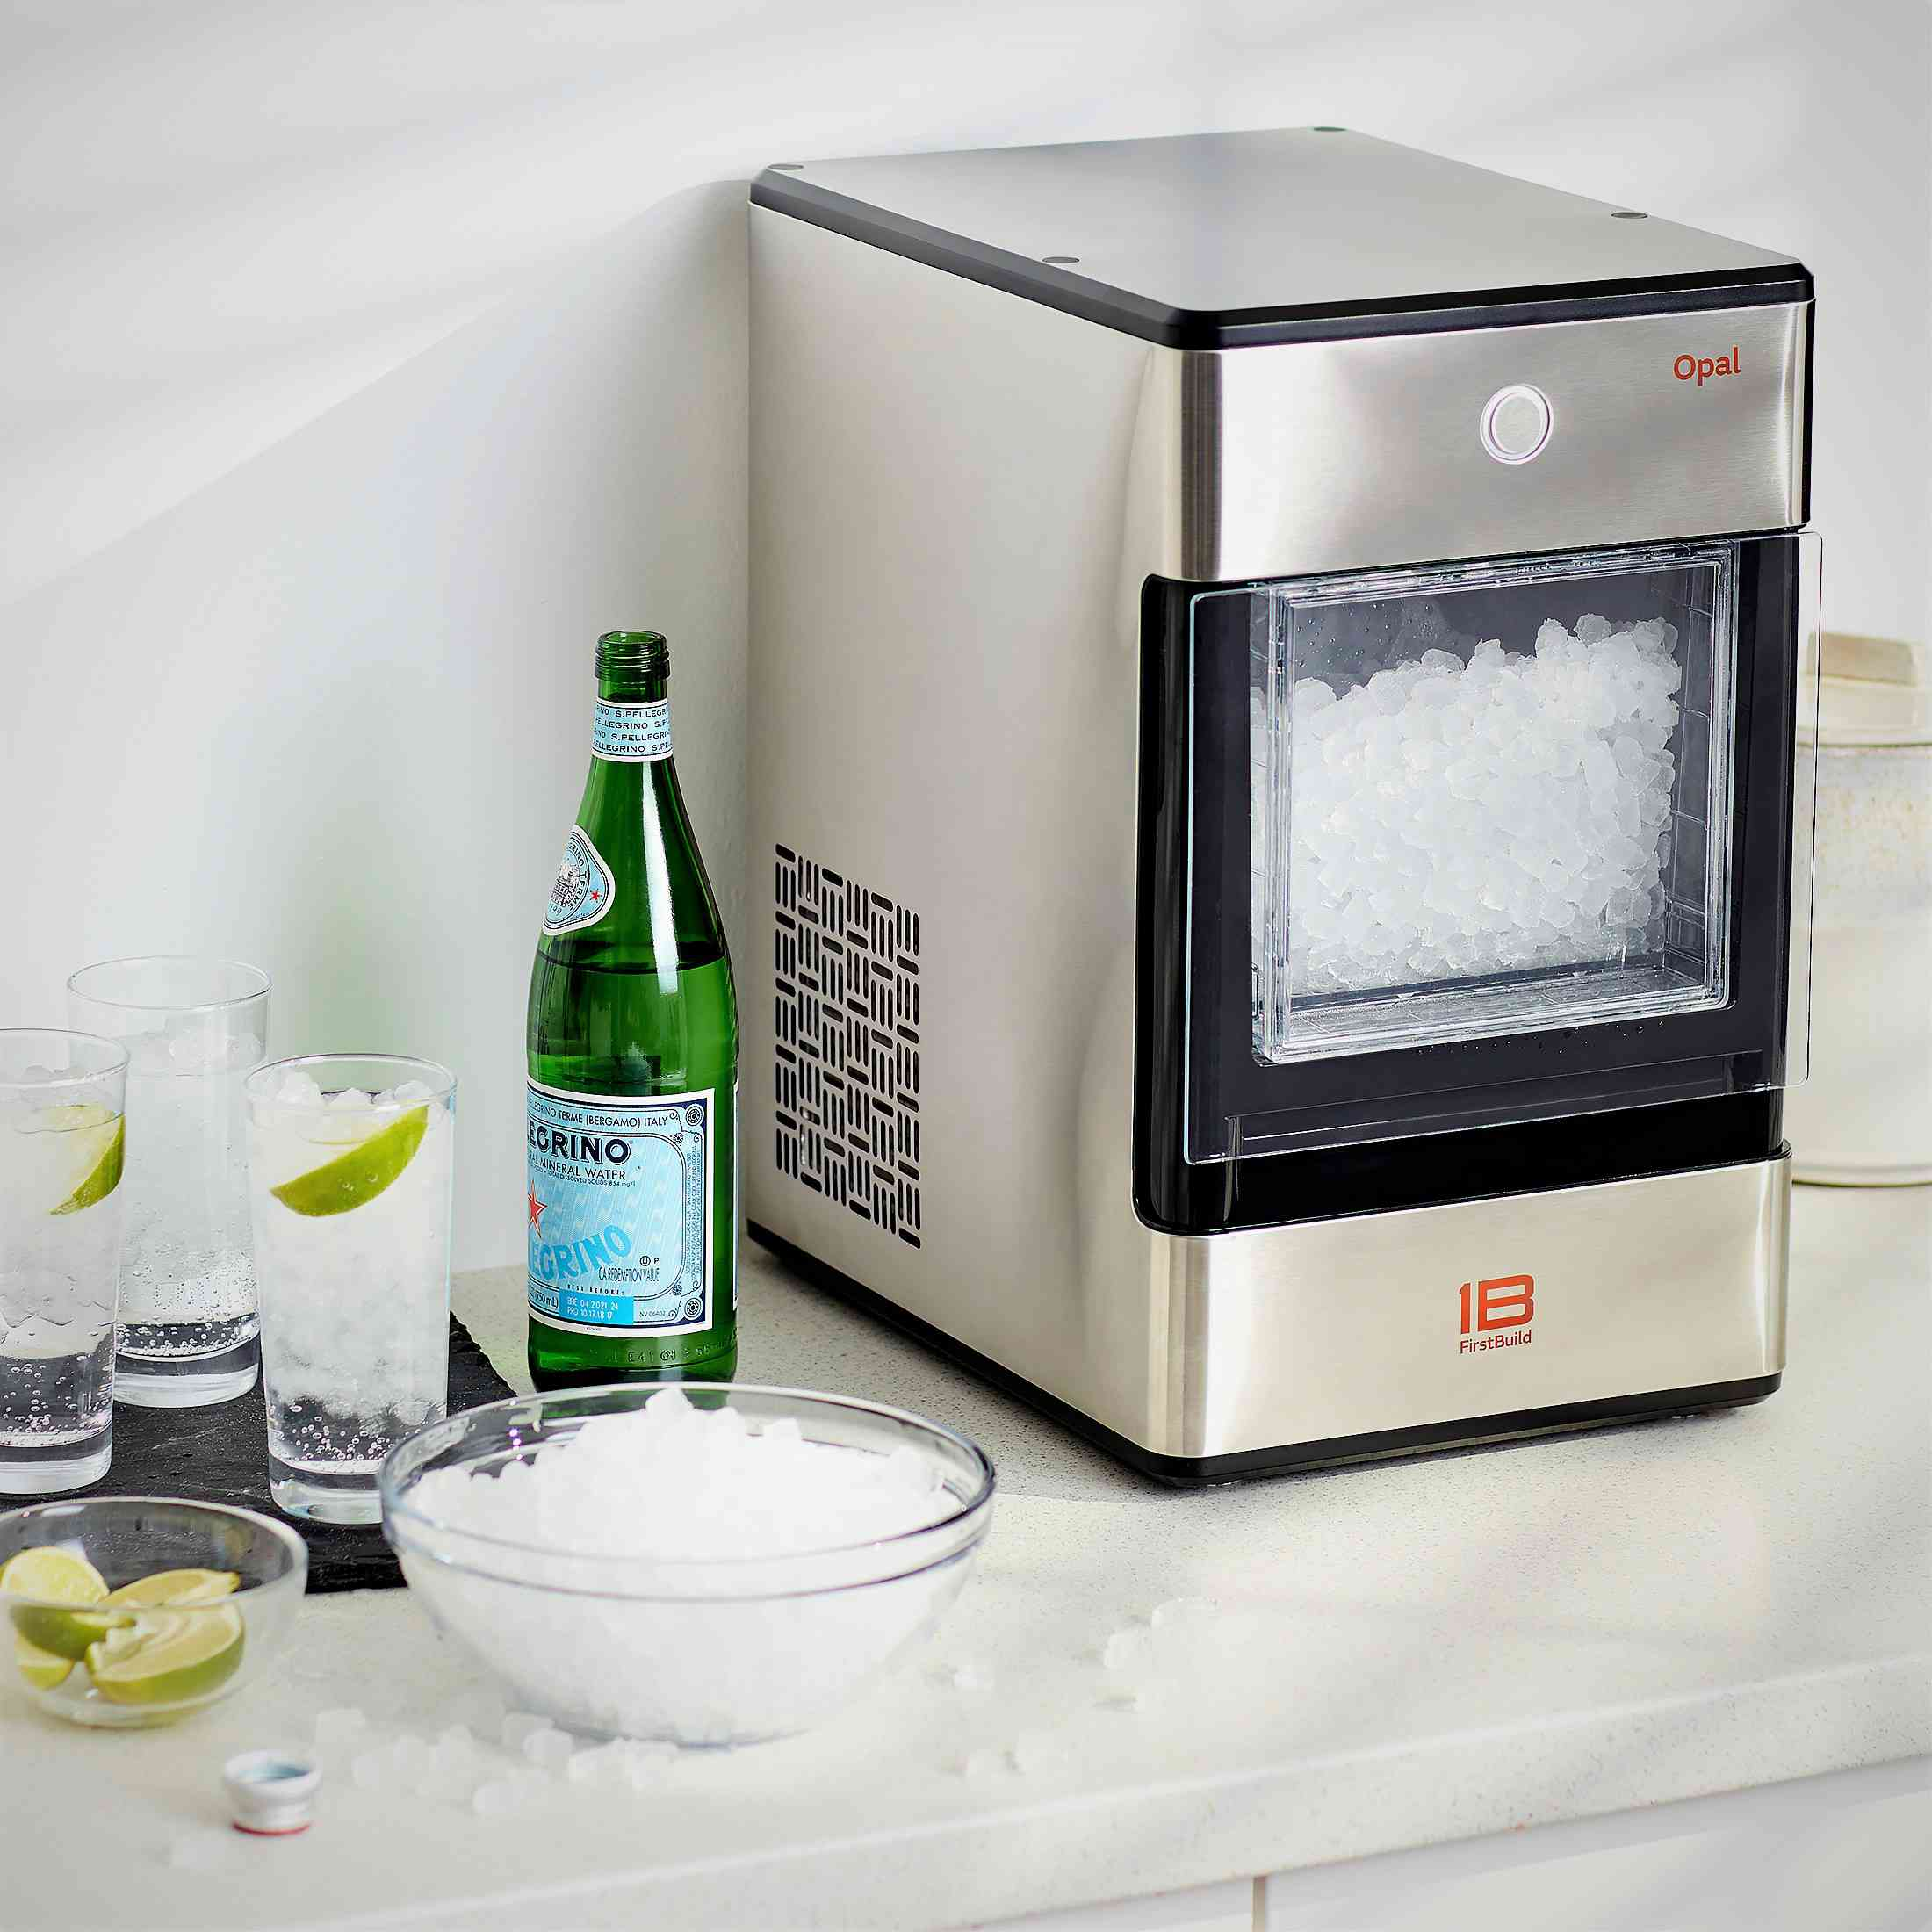 Opal Nugget Ice Maker, 24lb. Capacity Stainless Steel